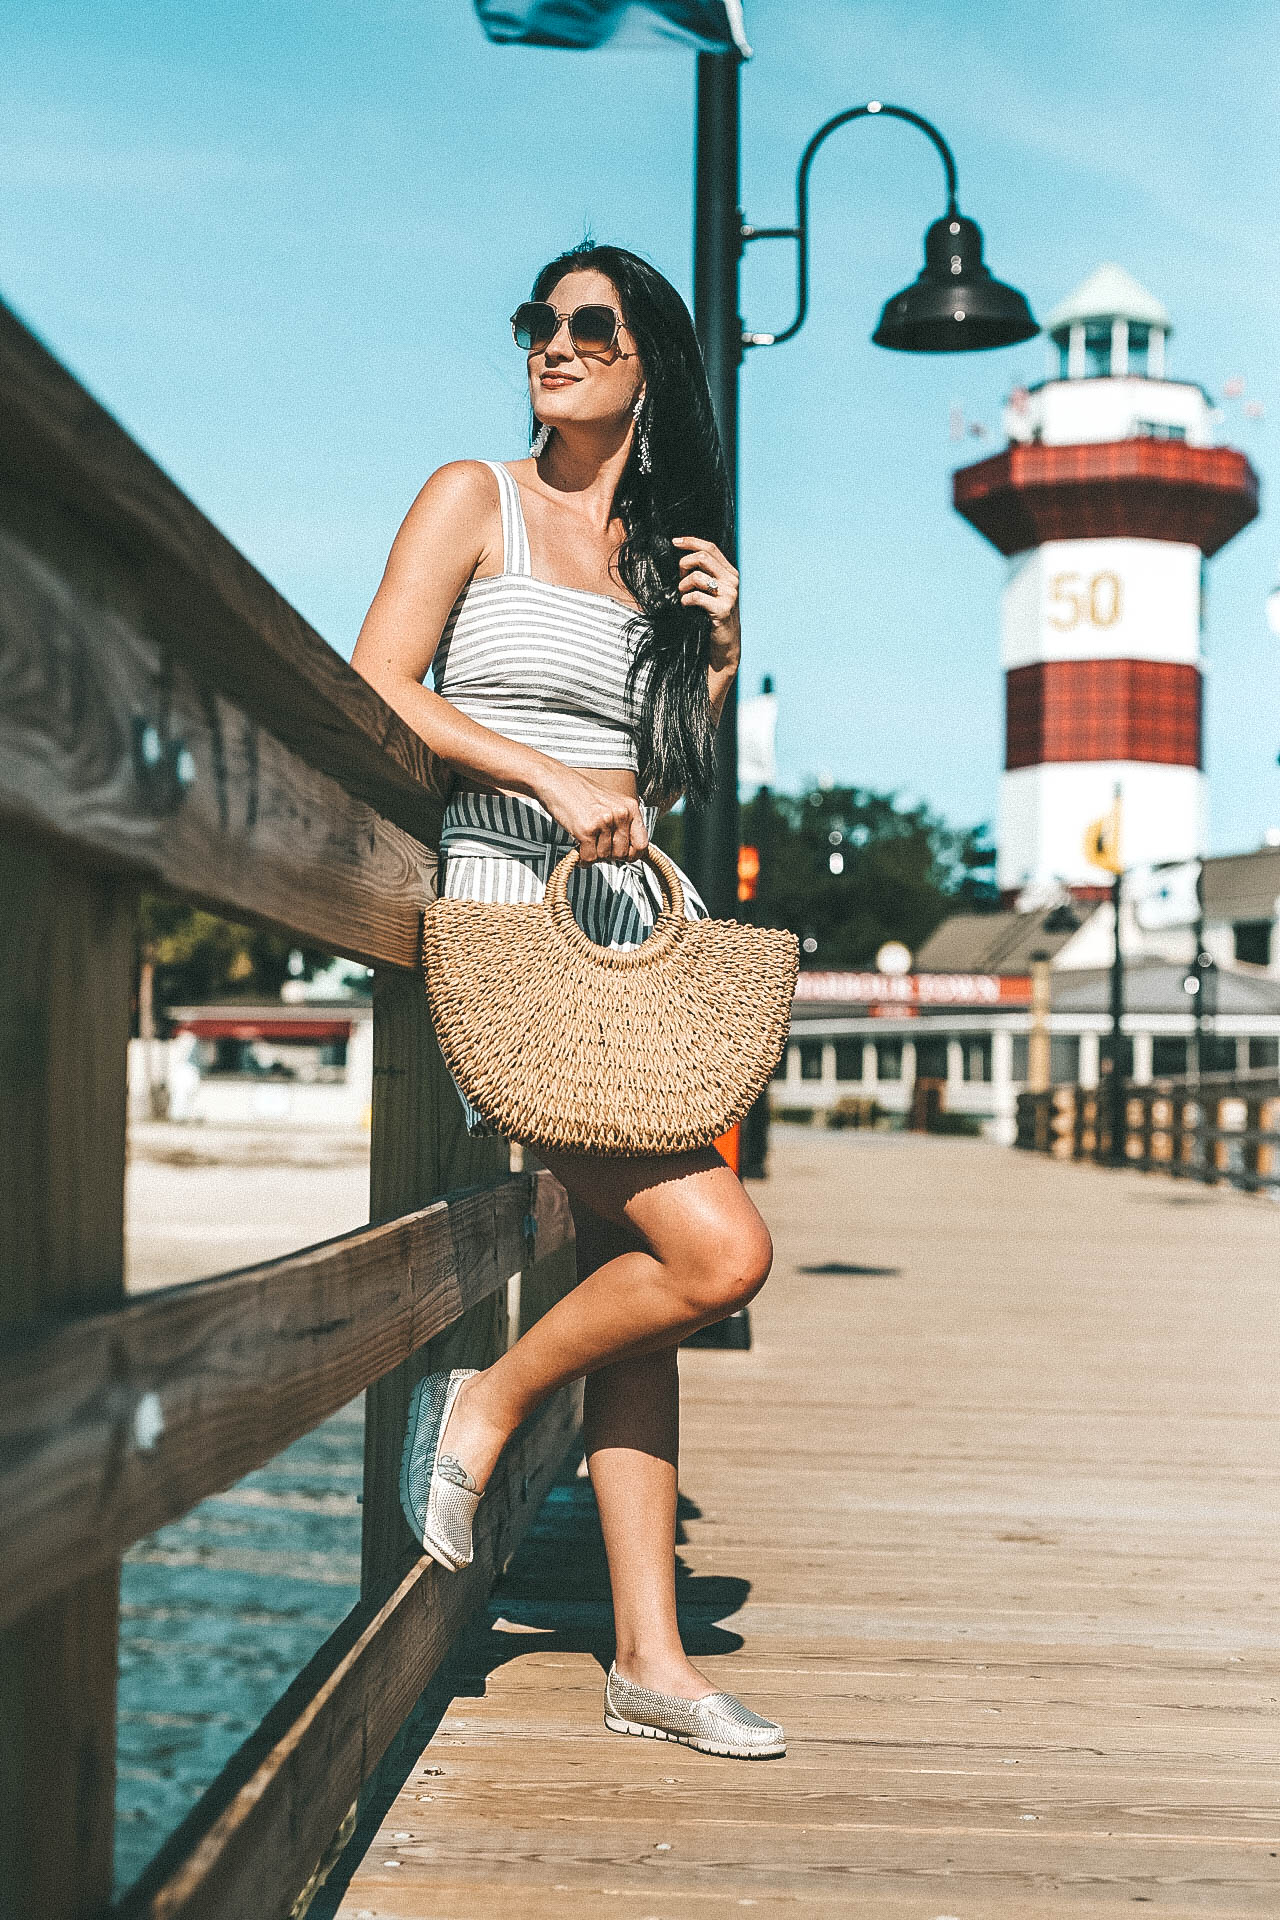 DTKAustin shares tips on what to do at the Harbour Town Lighthouse while on Hilton Head Island in South Carolina. || Dressed to Kill #HHI #hiltonhead #harbourtownlighthouse #sctravel #scbeaches #dtkaustin - {Exploring the Harbour Town Lighthouse + Giveaway} featured by popular Austin travel blogger, Dressed to Kill